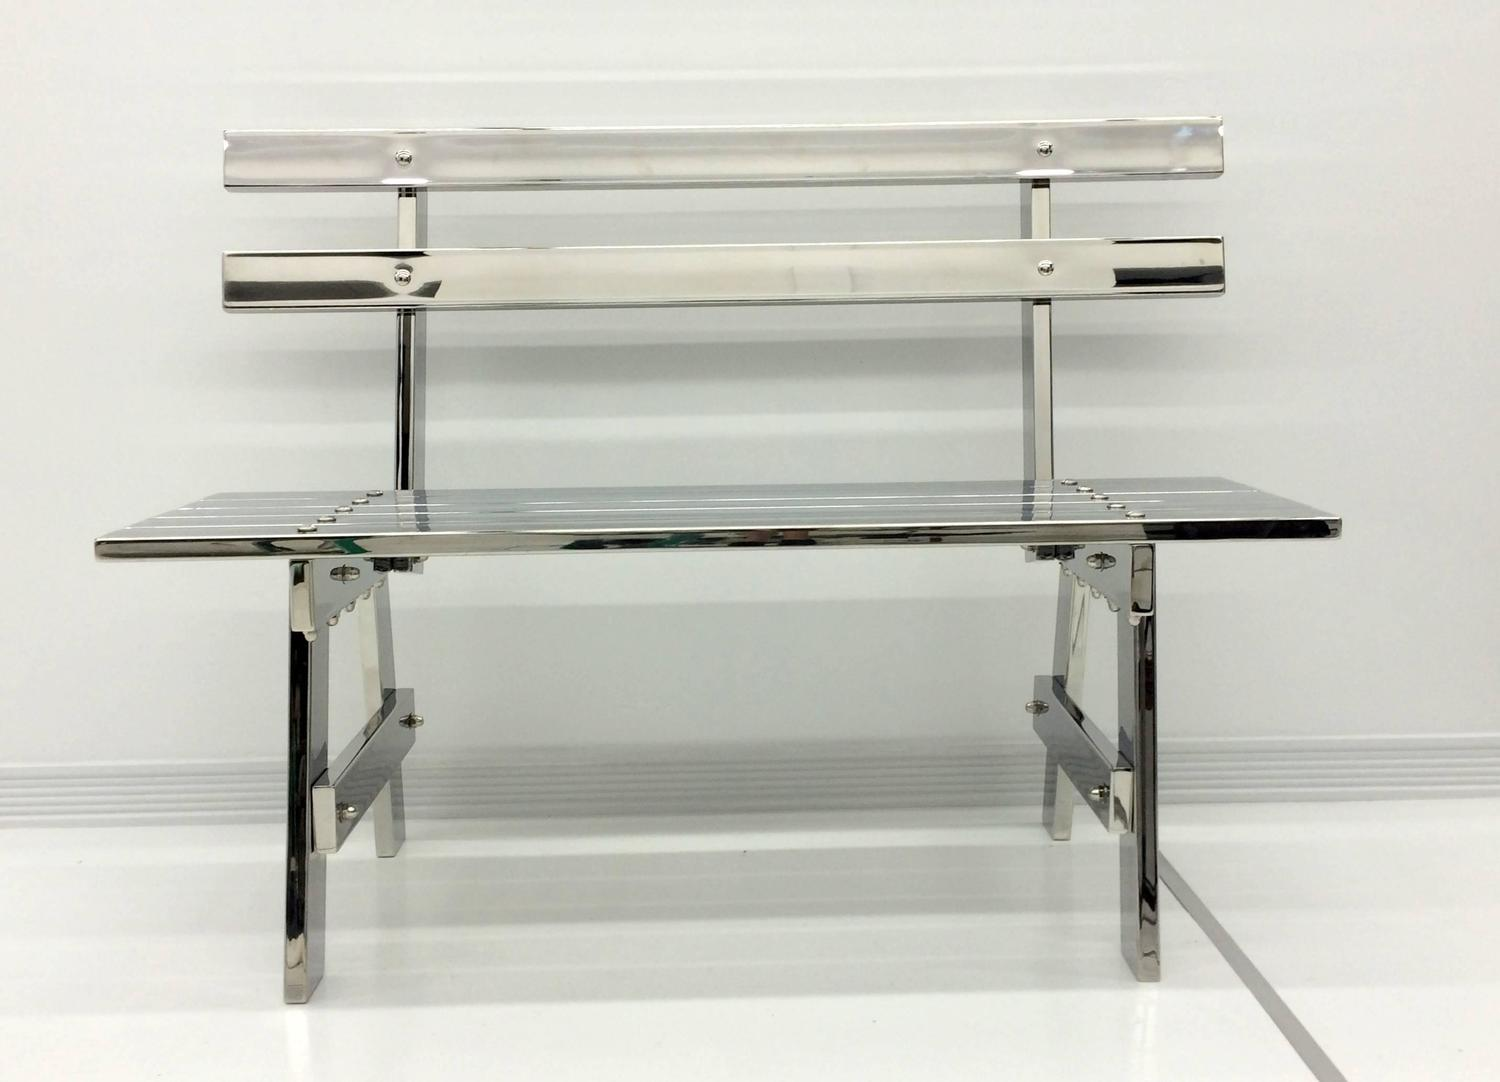 Sculptural Modern Stainless Steel Park Bench For Sale At 1stdibs